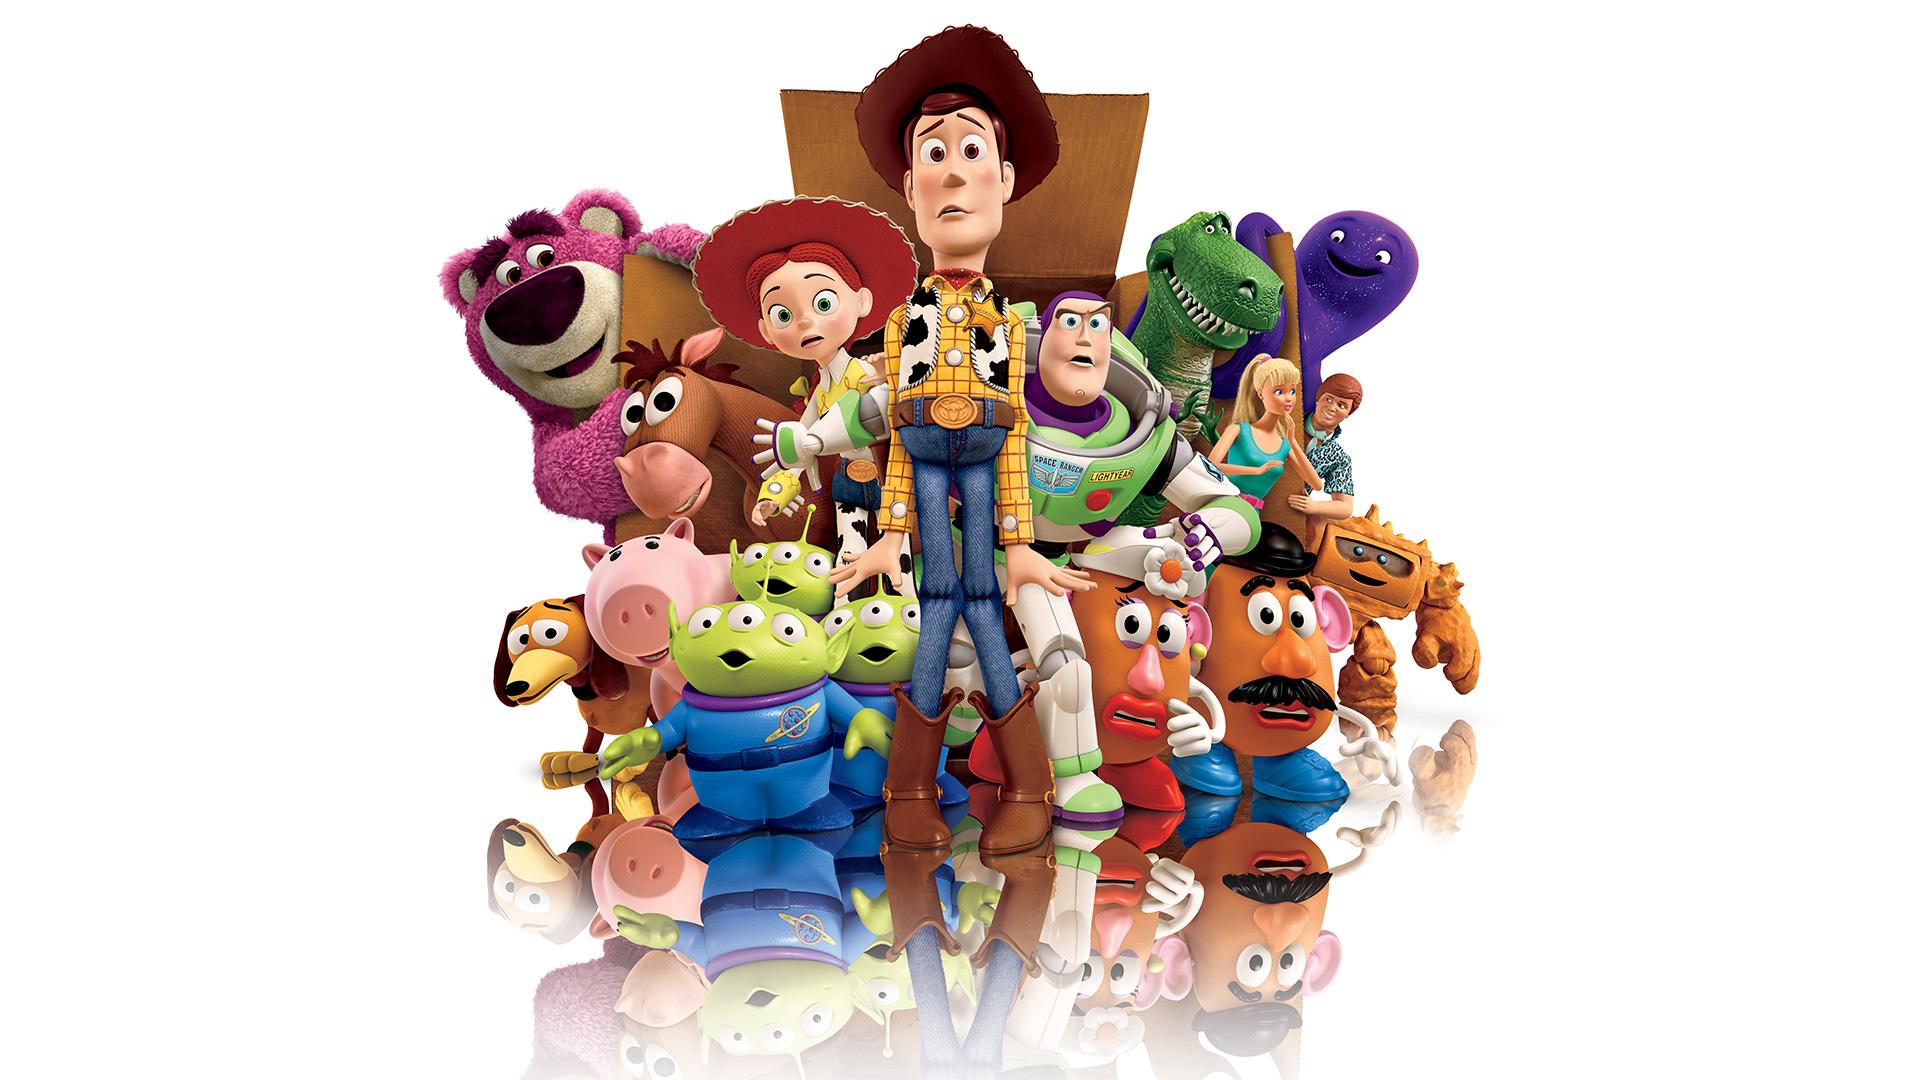 Toy Story 3 Wallpapers Pictures Images